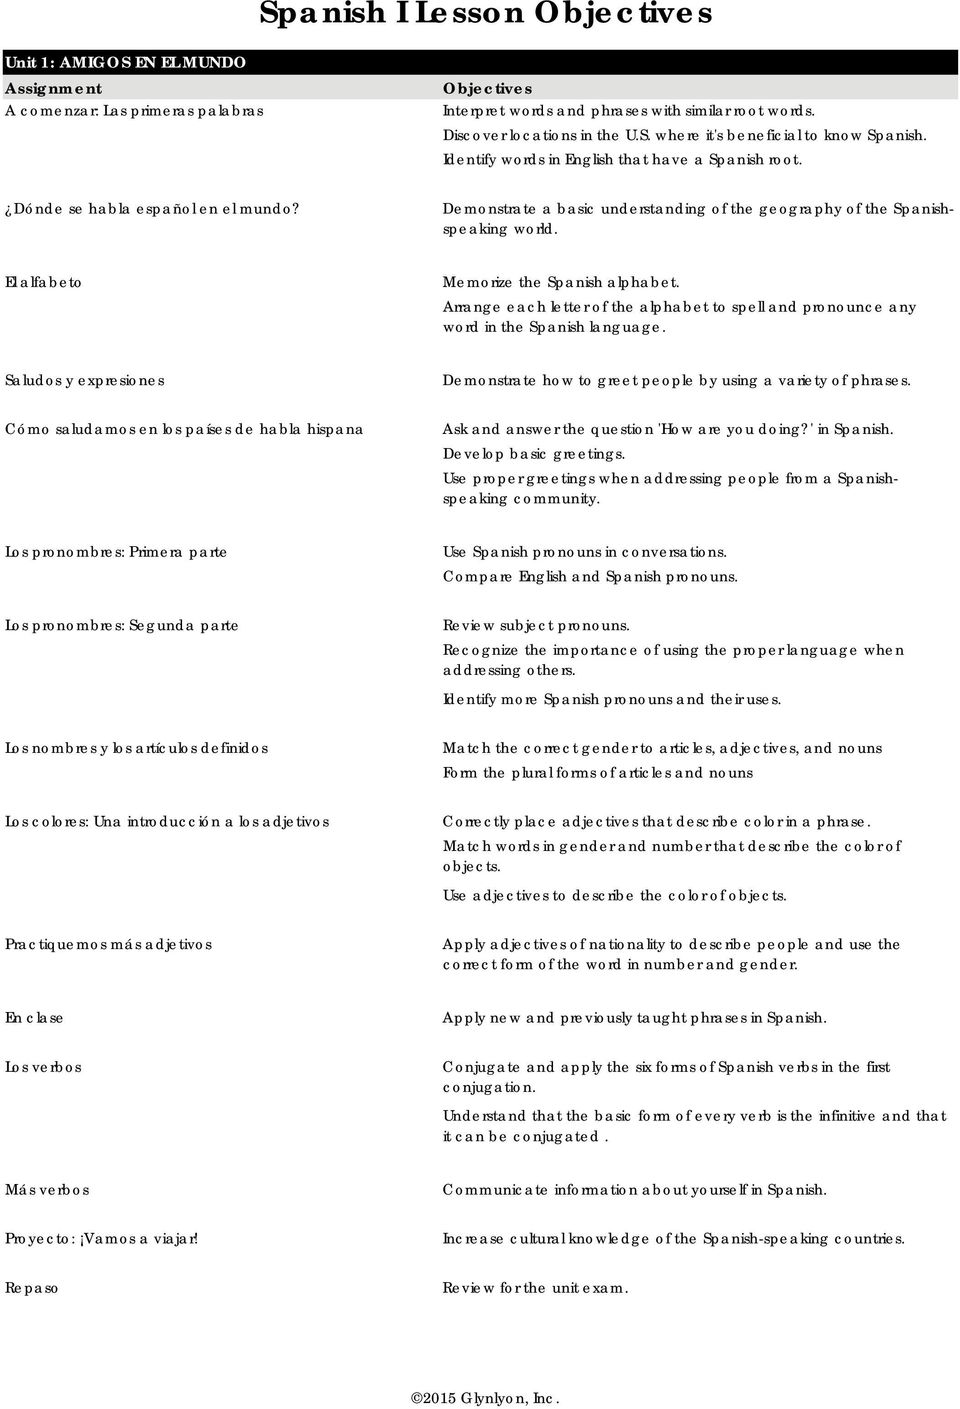 Spanish i lesson objectives pdf el alfabeto memorize the spanish alphabet arrange each letter of the alphabet to spell and m4hsunfo